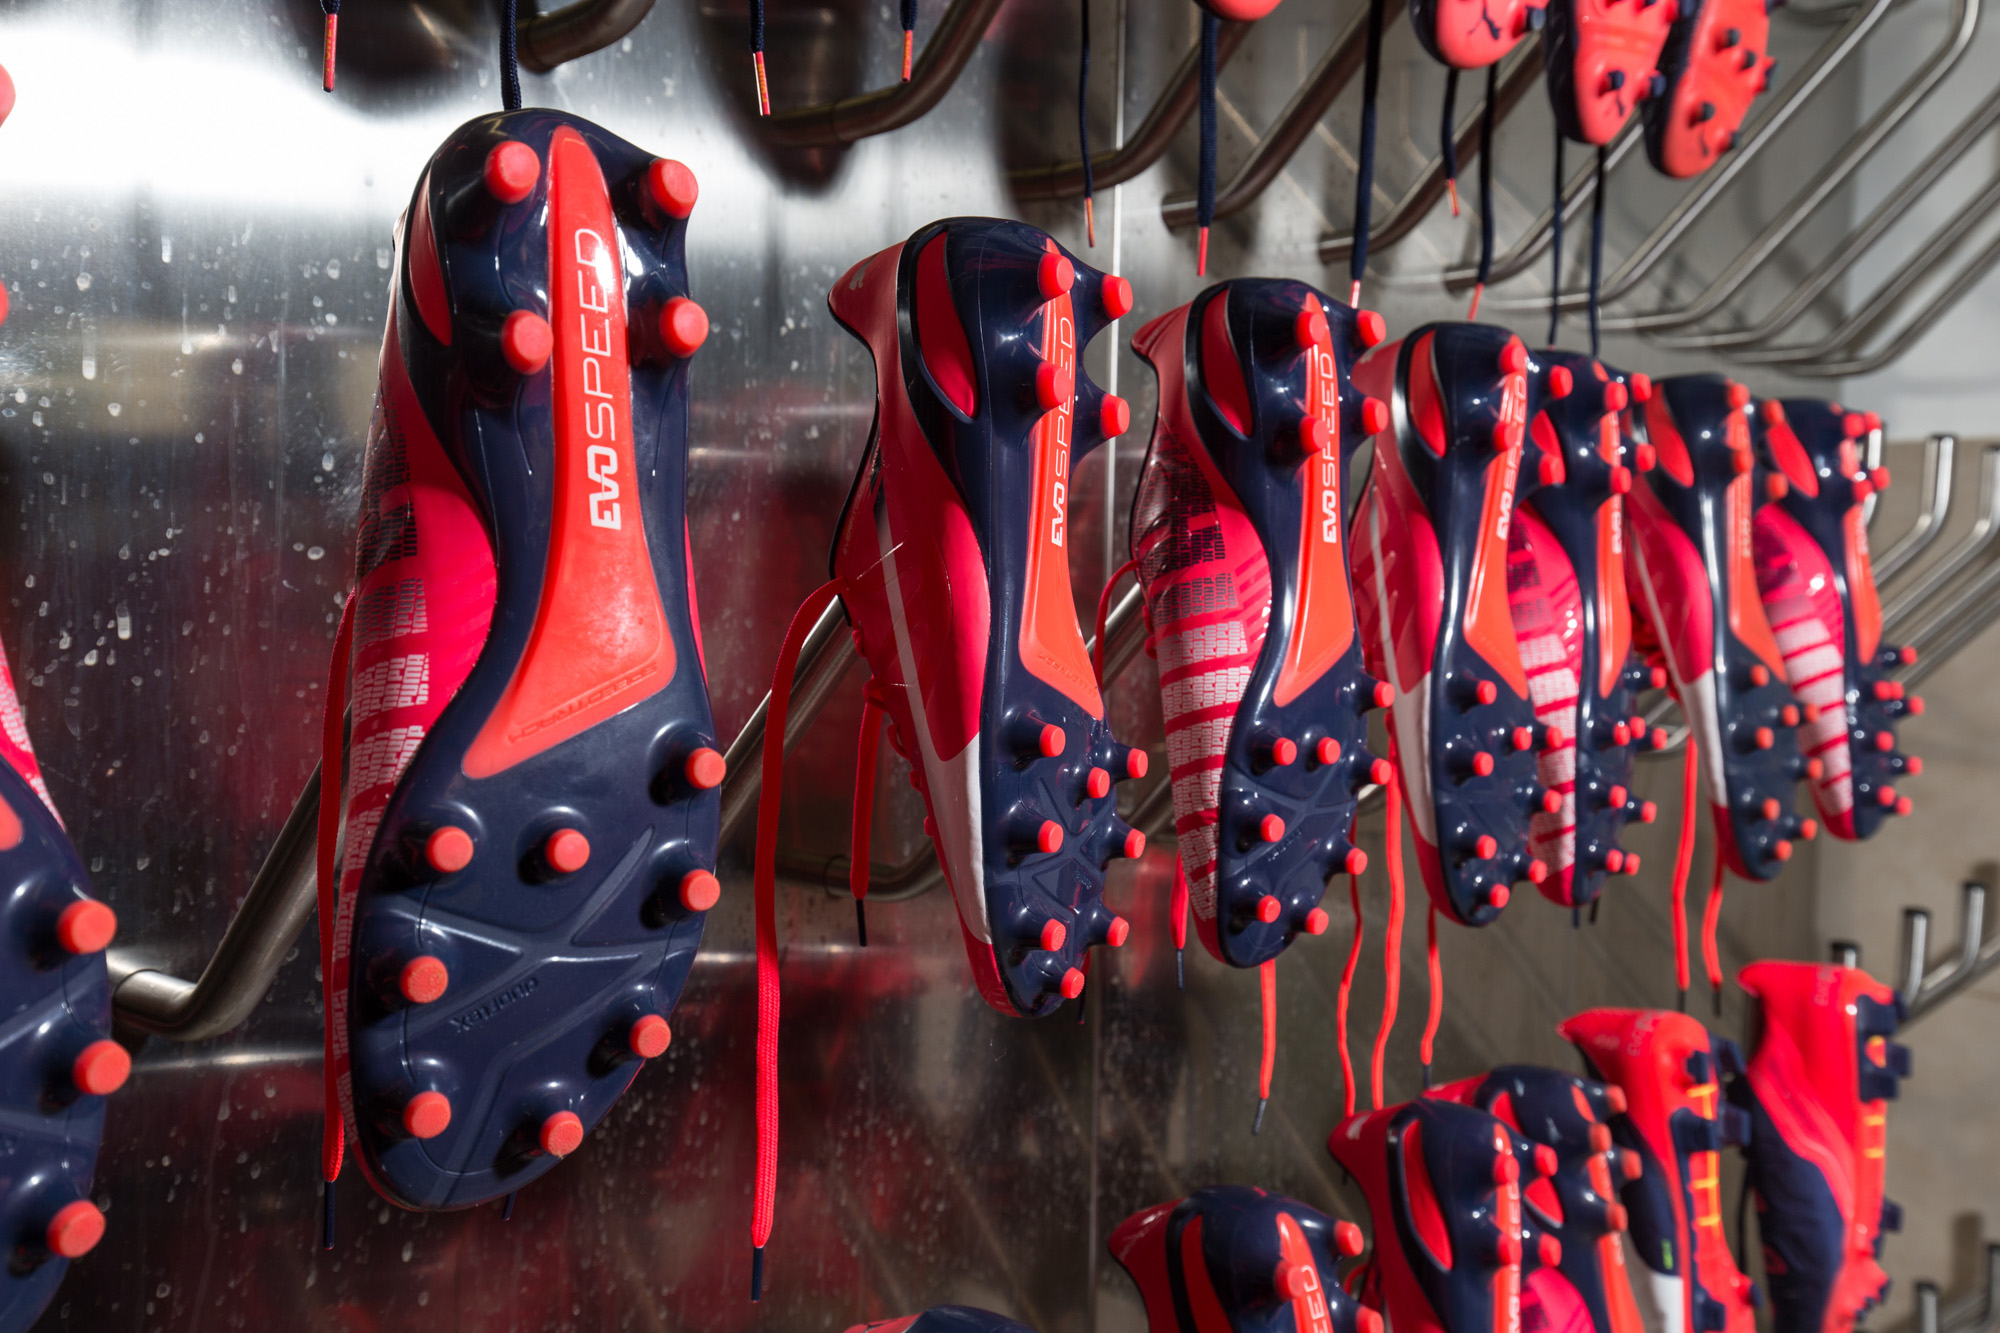 363112. 363123. Every feature of the evoSPEED 1.3 boot ... e88bb84da